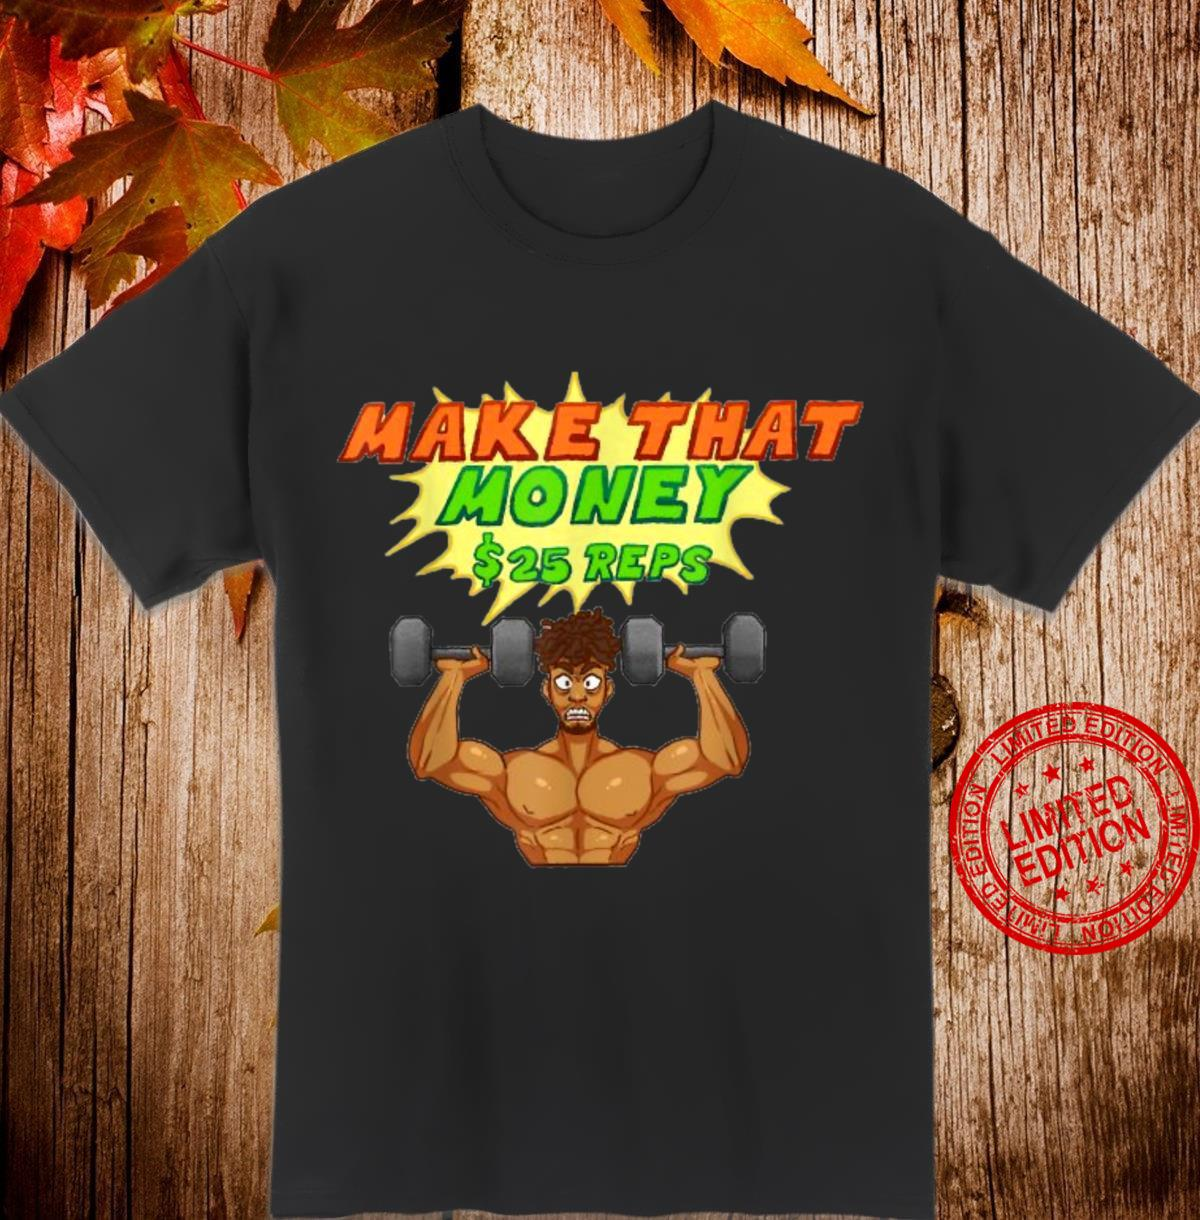 Old School and New School Workout Hit it HardBODY Shirt